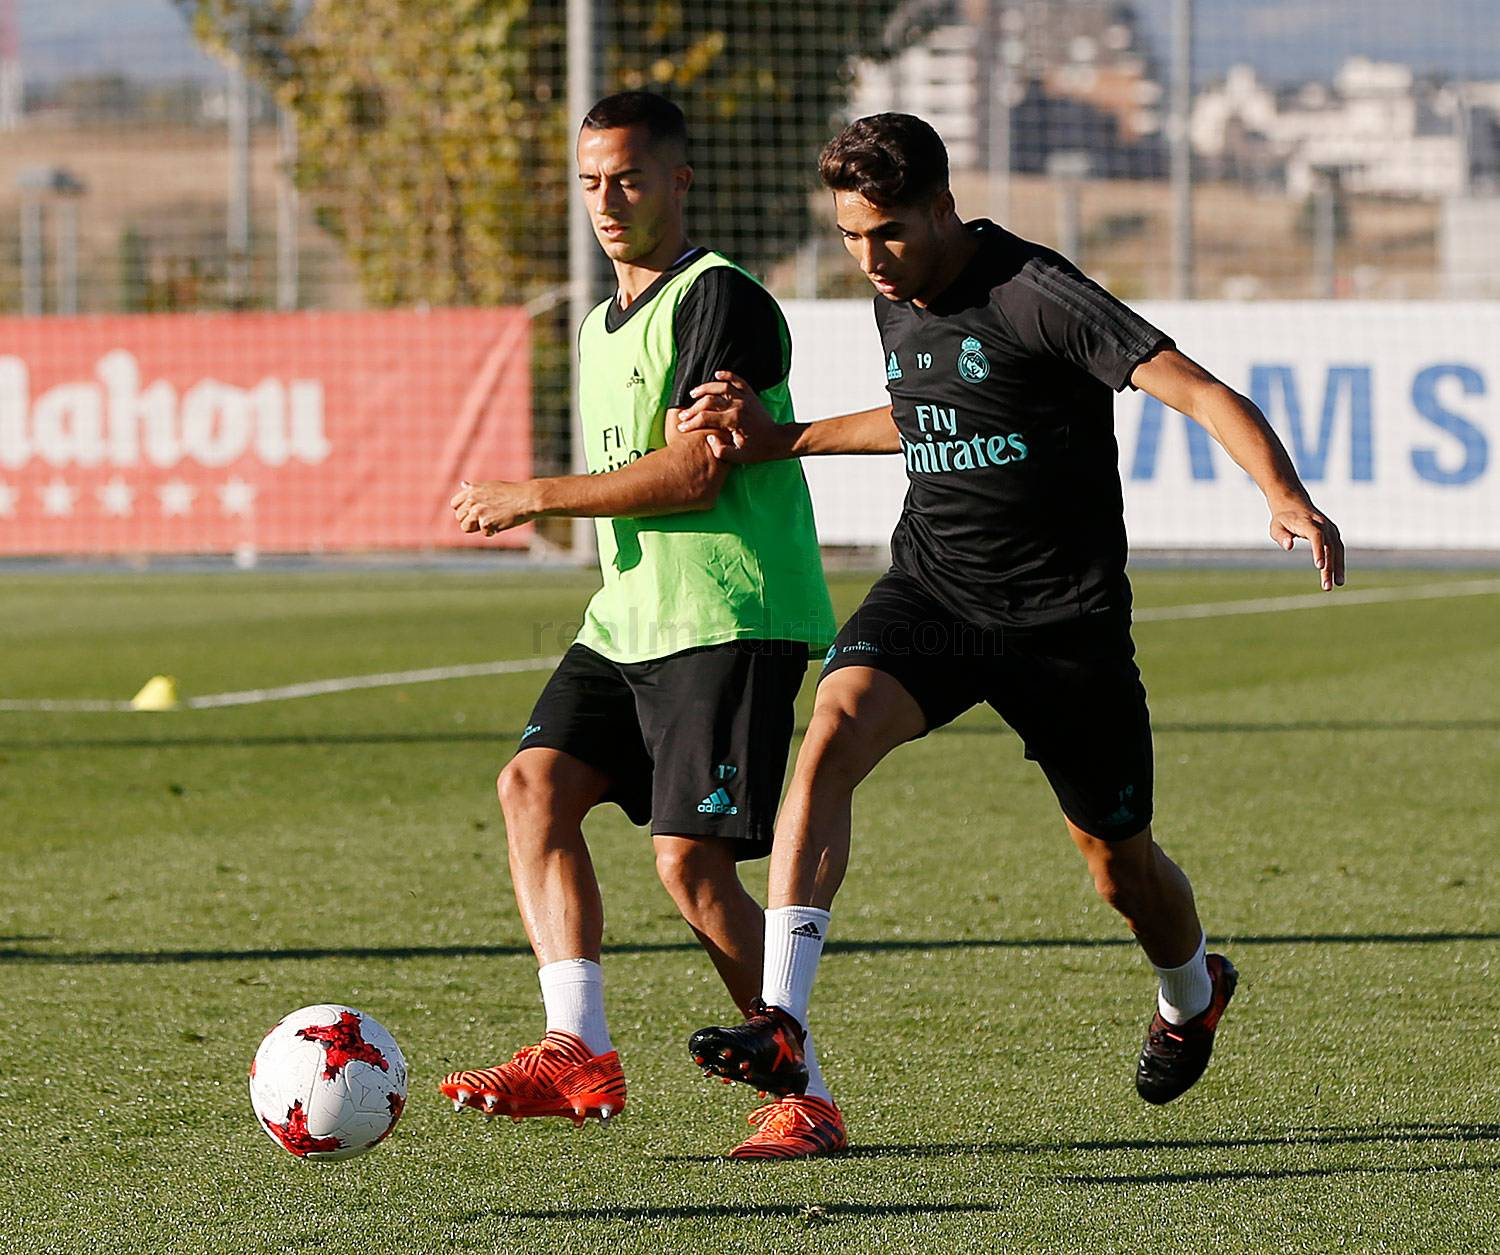 Real Madrid - Entrenamiento del Real Madrid - 24-10-2017